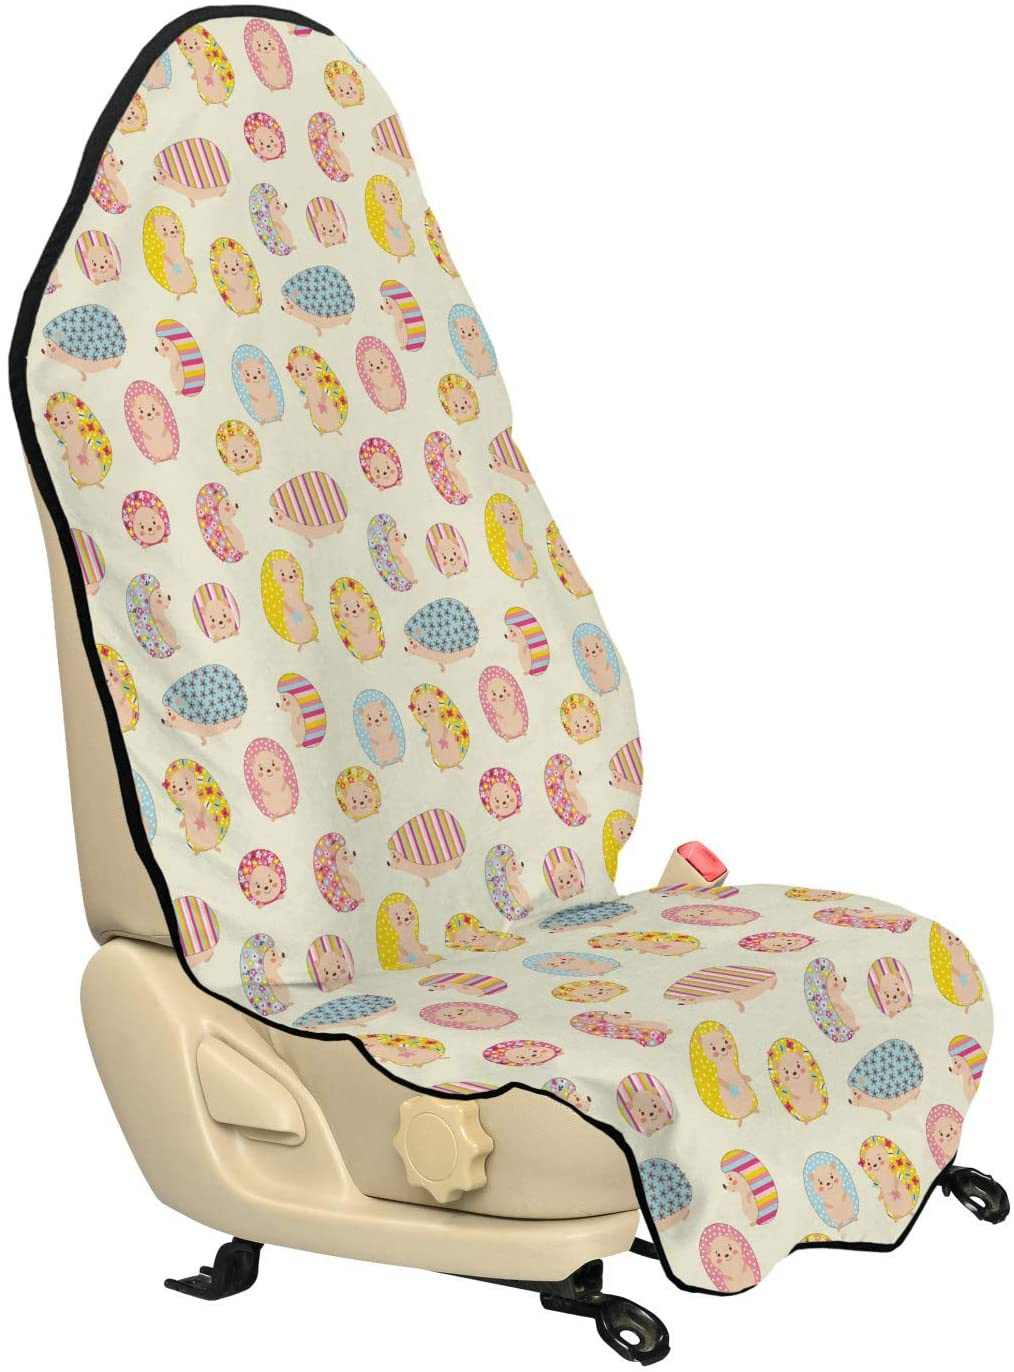 Ambesonne Hedgehog Car Seat Hoodie, Smiling Baby Characters with Dotted Floral and Striped Prints Kids Toddler Nursery, Car Seat Cover Protector Non Slip Backing Universal Fit, 30